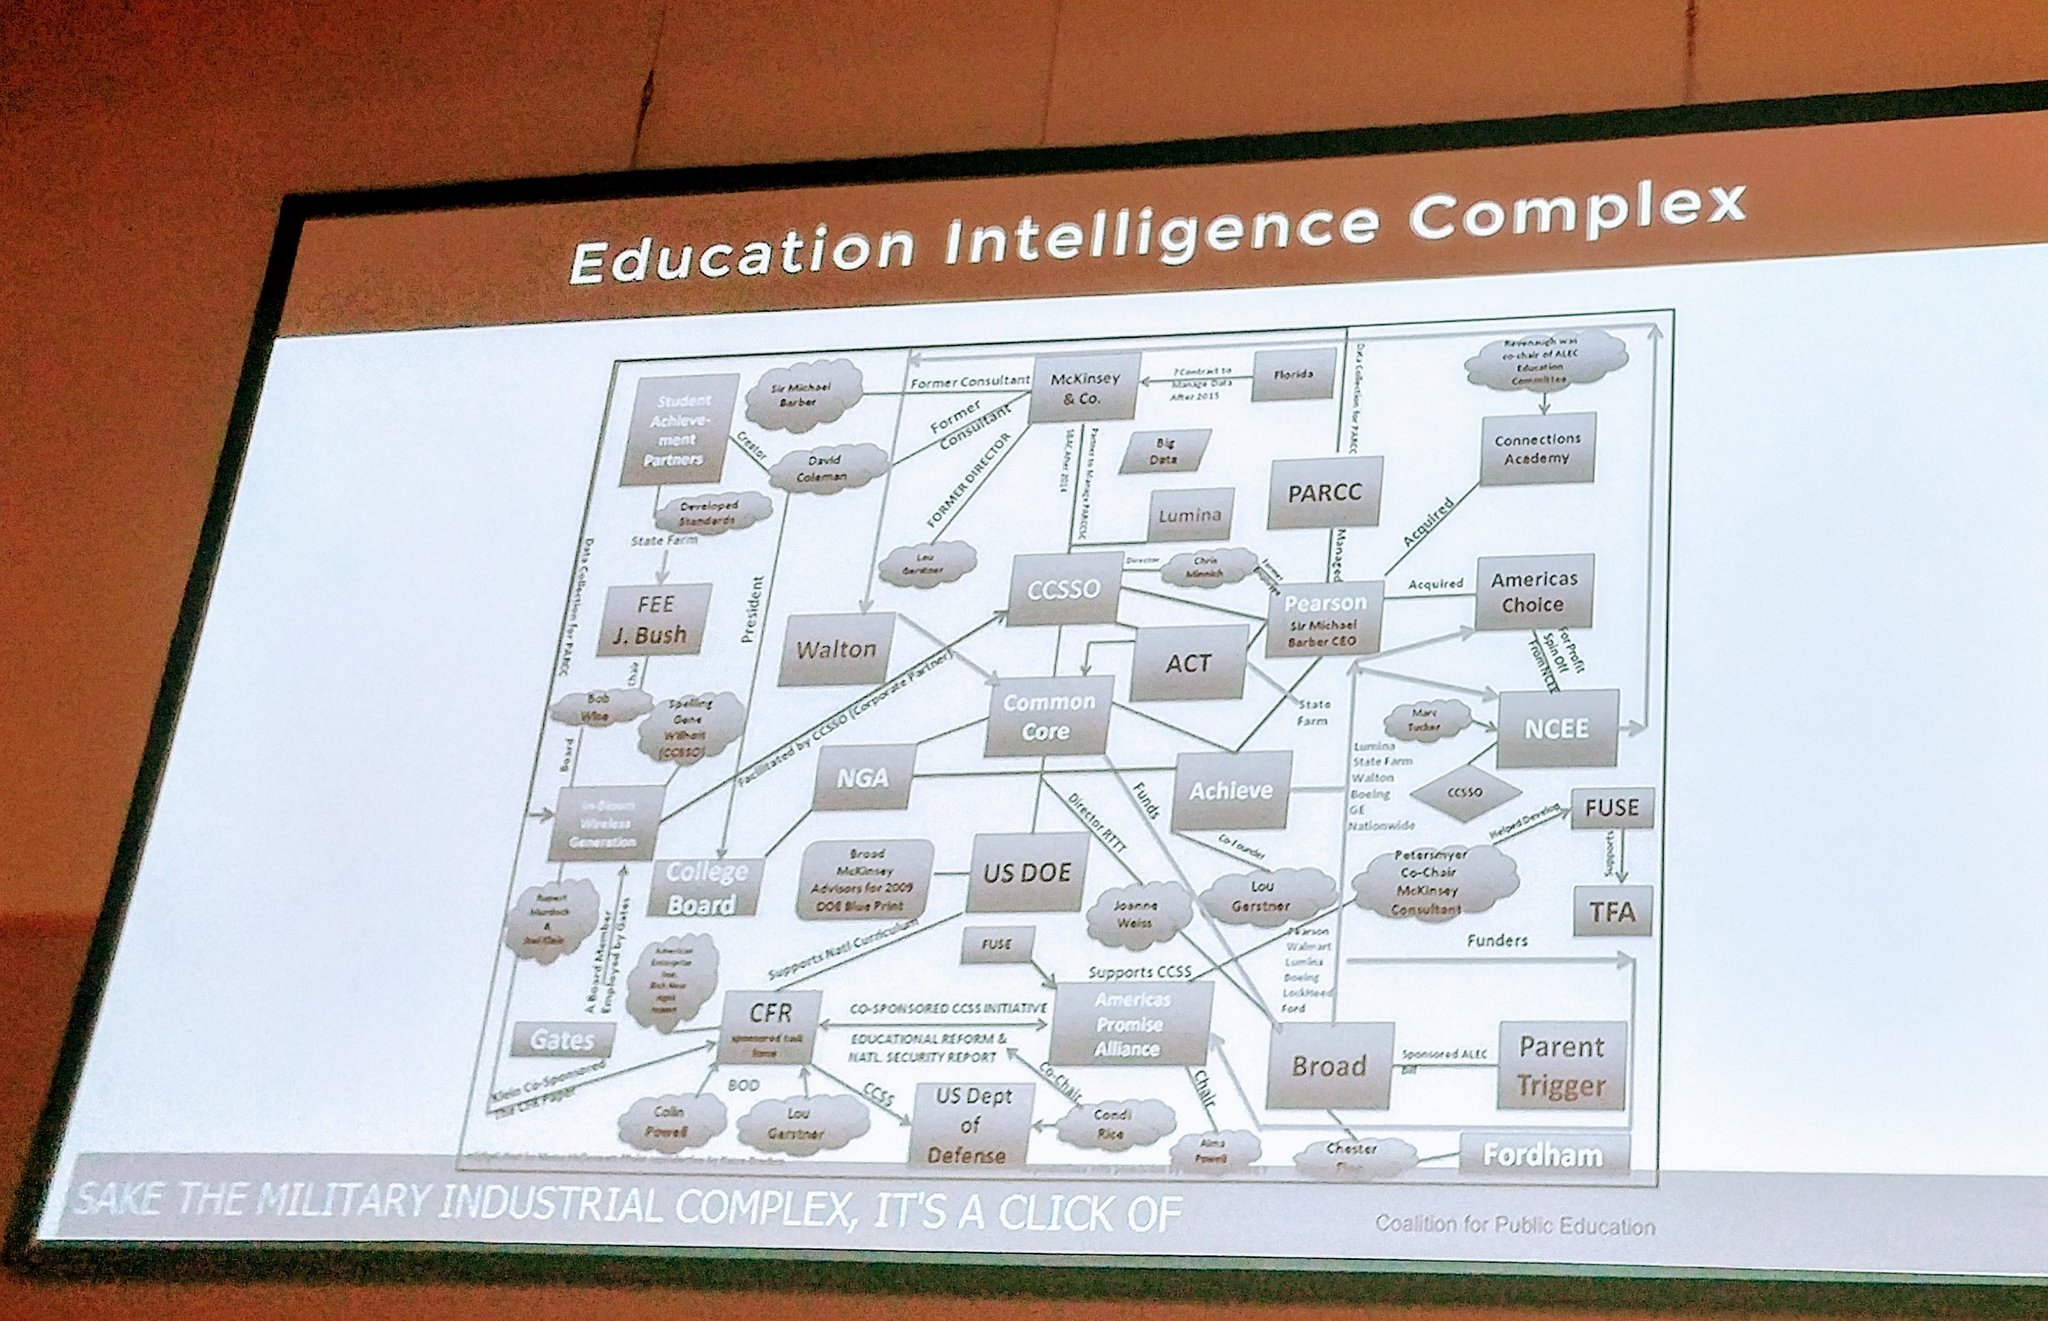 @ladlerka introduces the EIC--Education Intelligence Complex #4C17. Who is implied in writing and the global and local economies? https://t.co/JMAw191rca